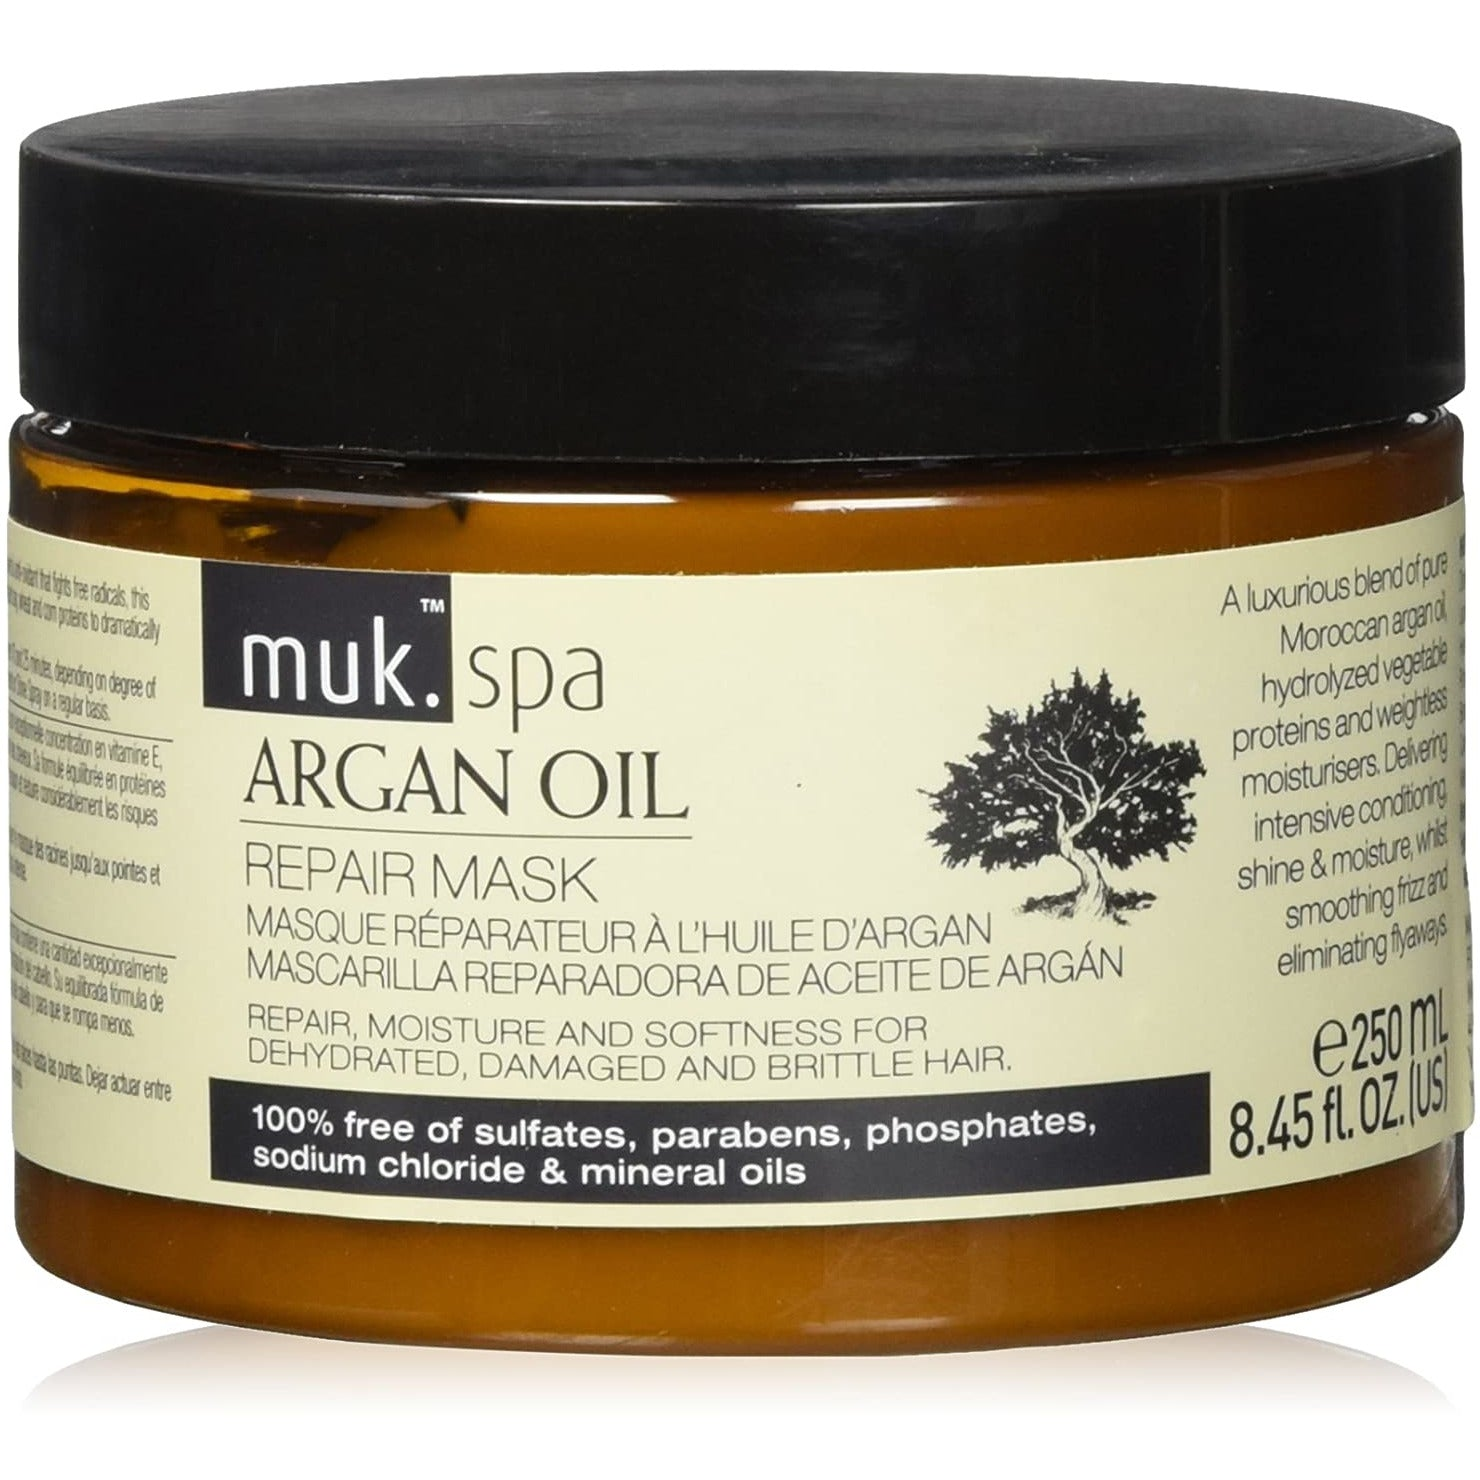 muk Spa Argan Oil Repair Mask